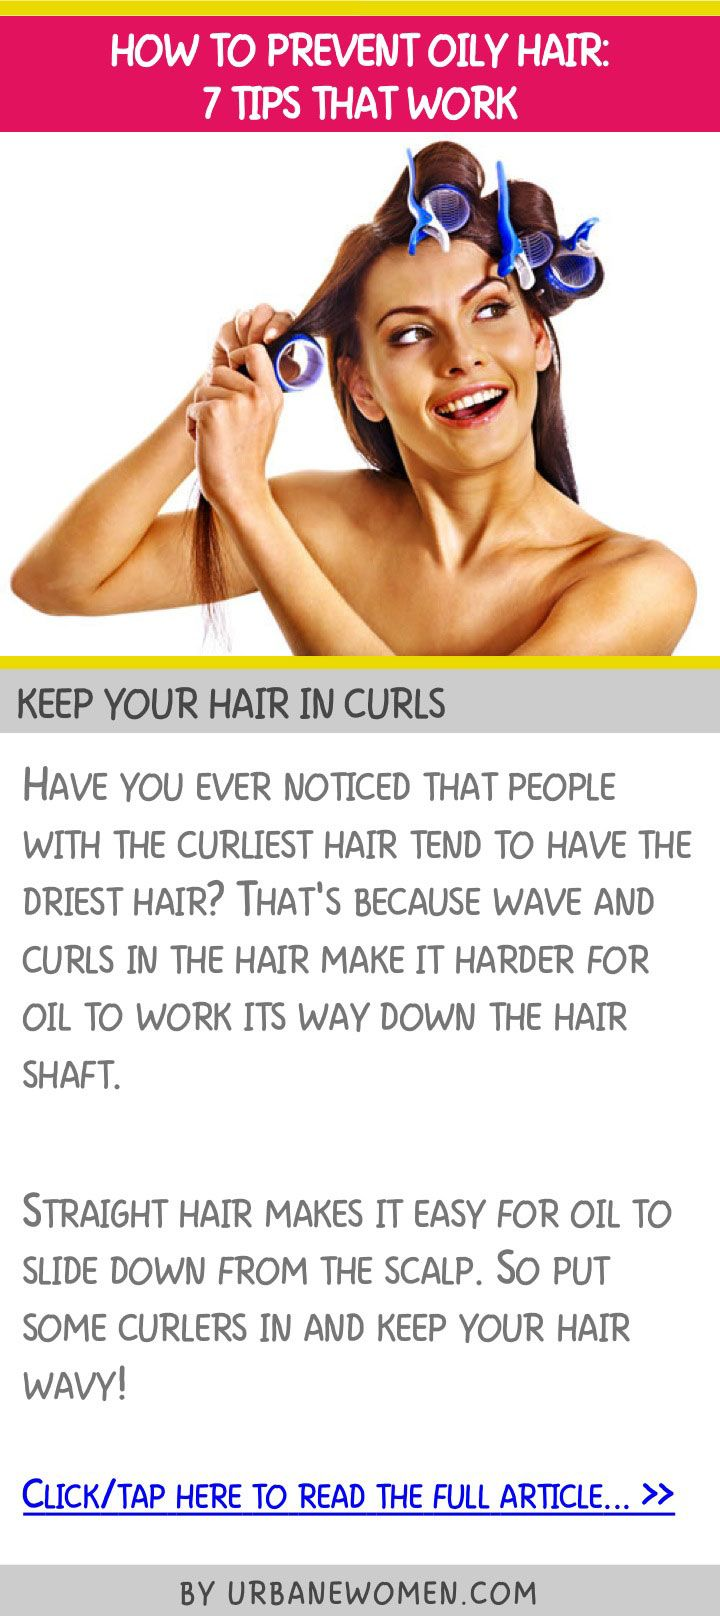 How To Prevent Oily Hair: 7 Tips That Work